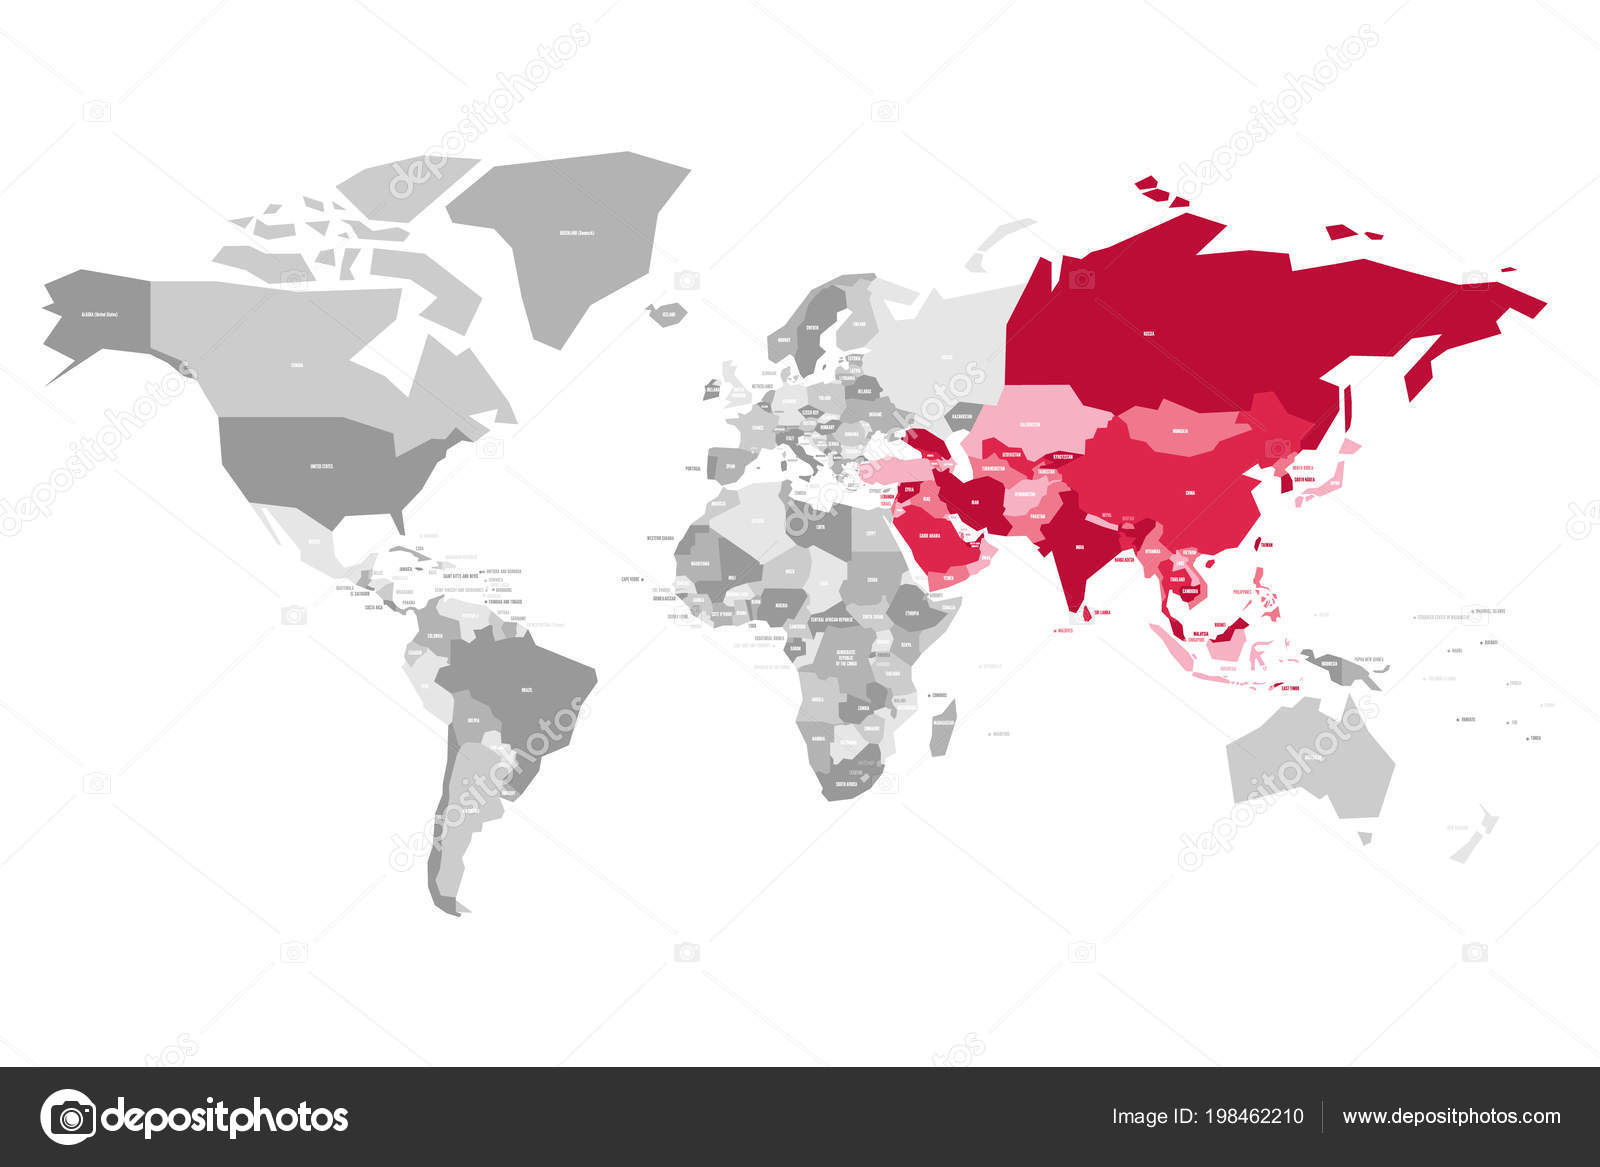 Map of World in grey colors with red highlighted countries of Asia Detailed Vector World Map With Selectable Countries on